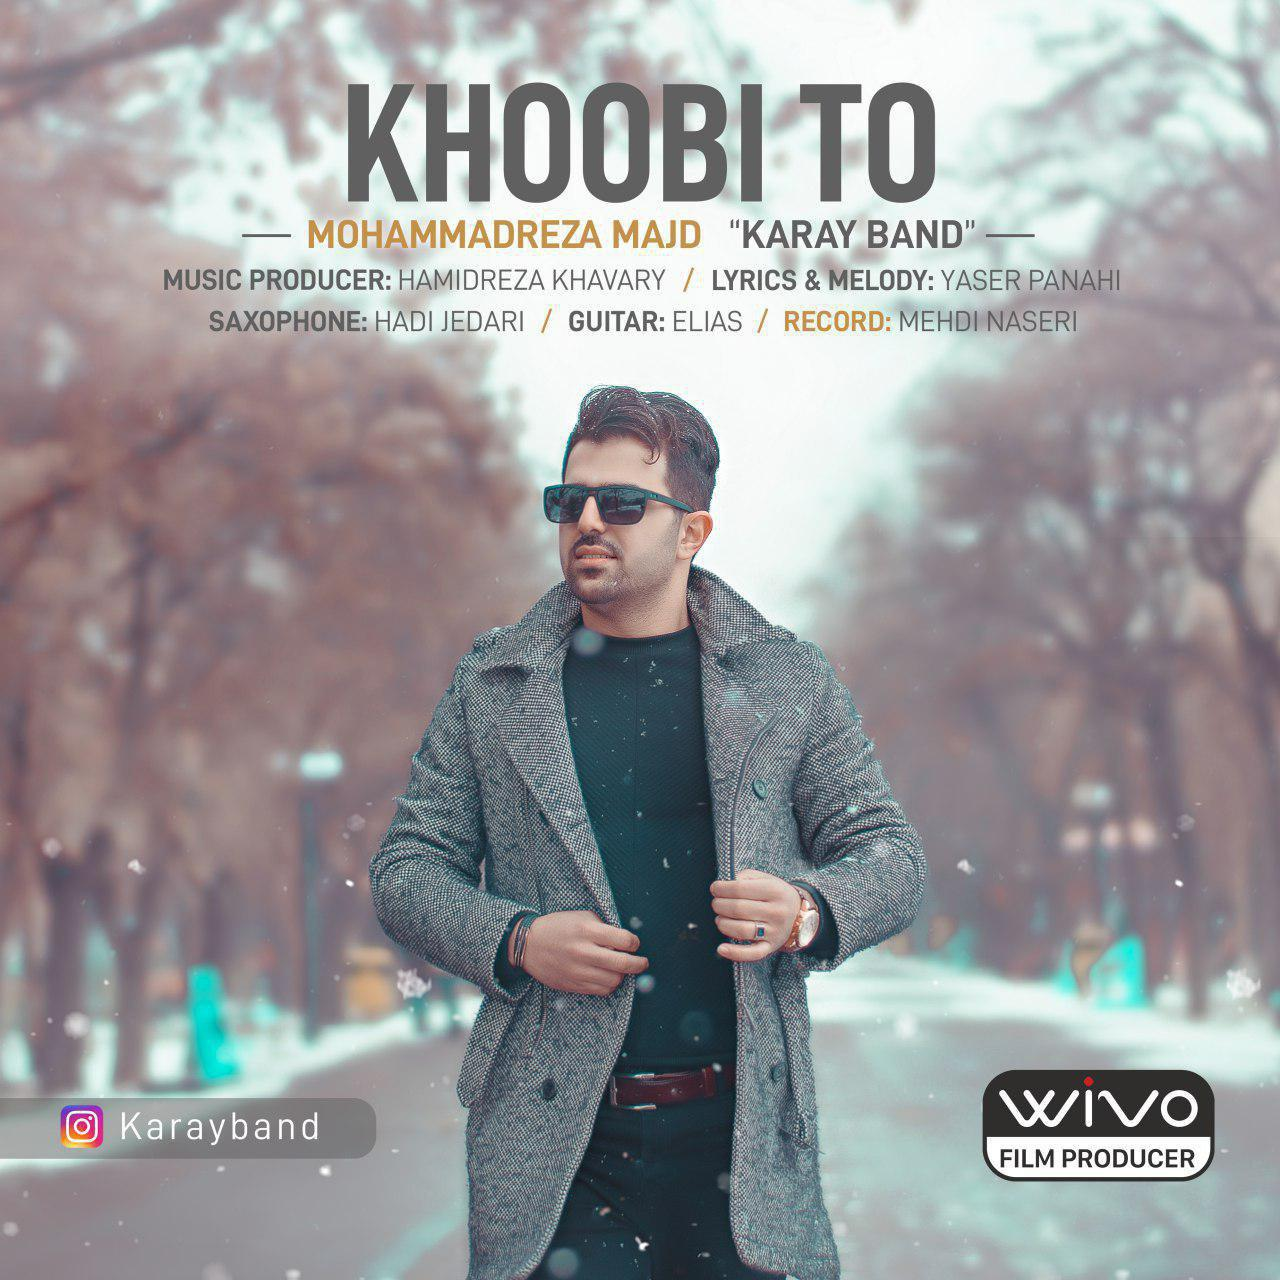 Karay Band – Khoobi To